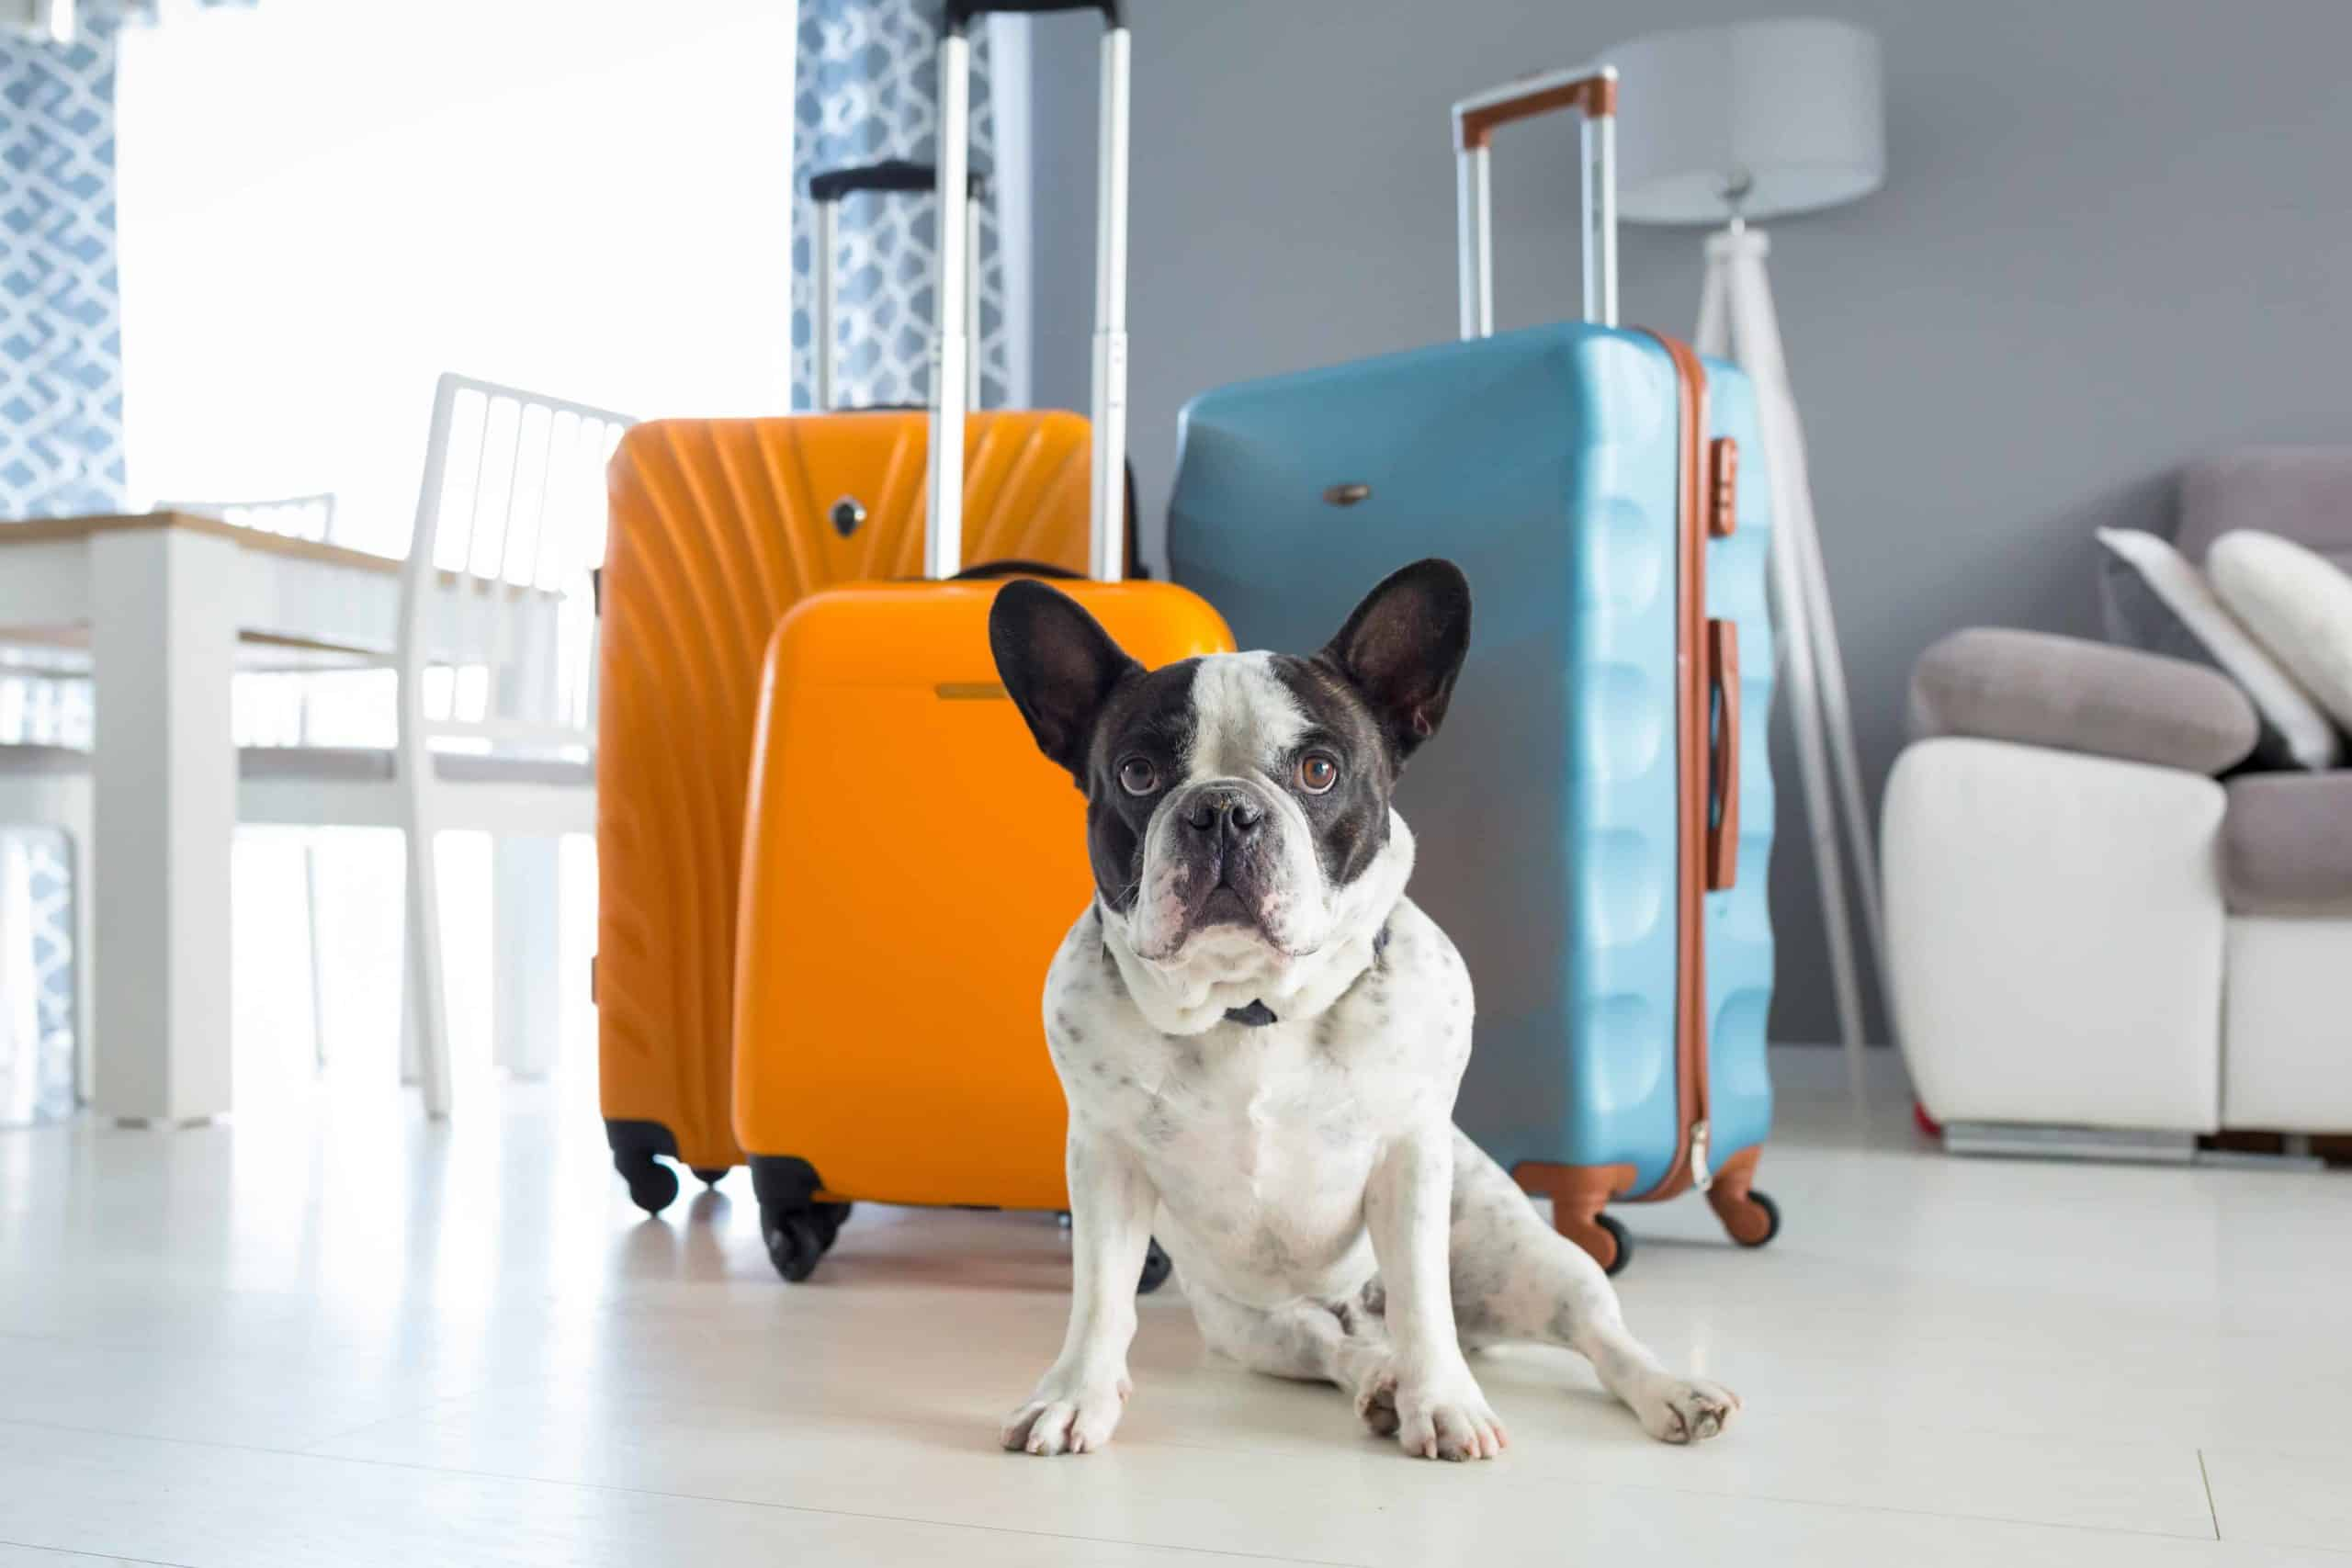 Boston terrier sits with suitcases. Dog travel guide tip: Before booking a flight with your dog, contact the airline to learn if they have any breed restrictions due to temperament or health conditions.